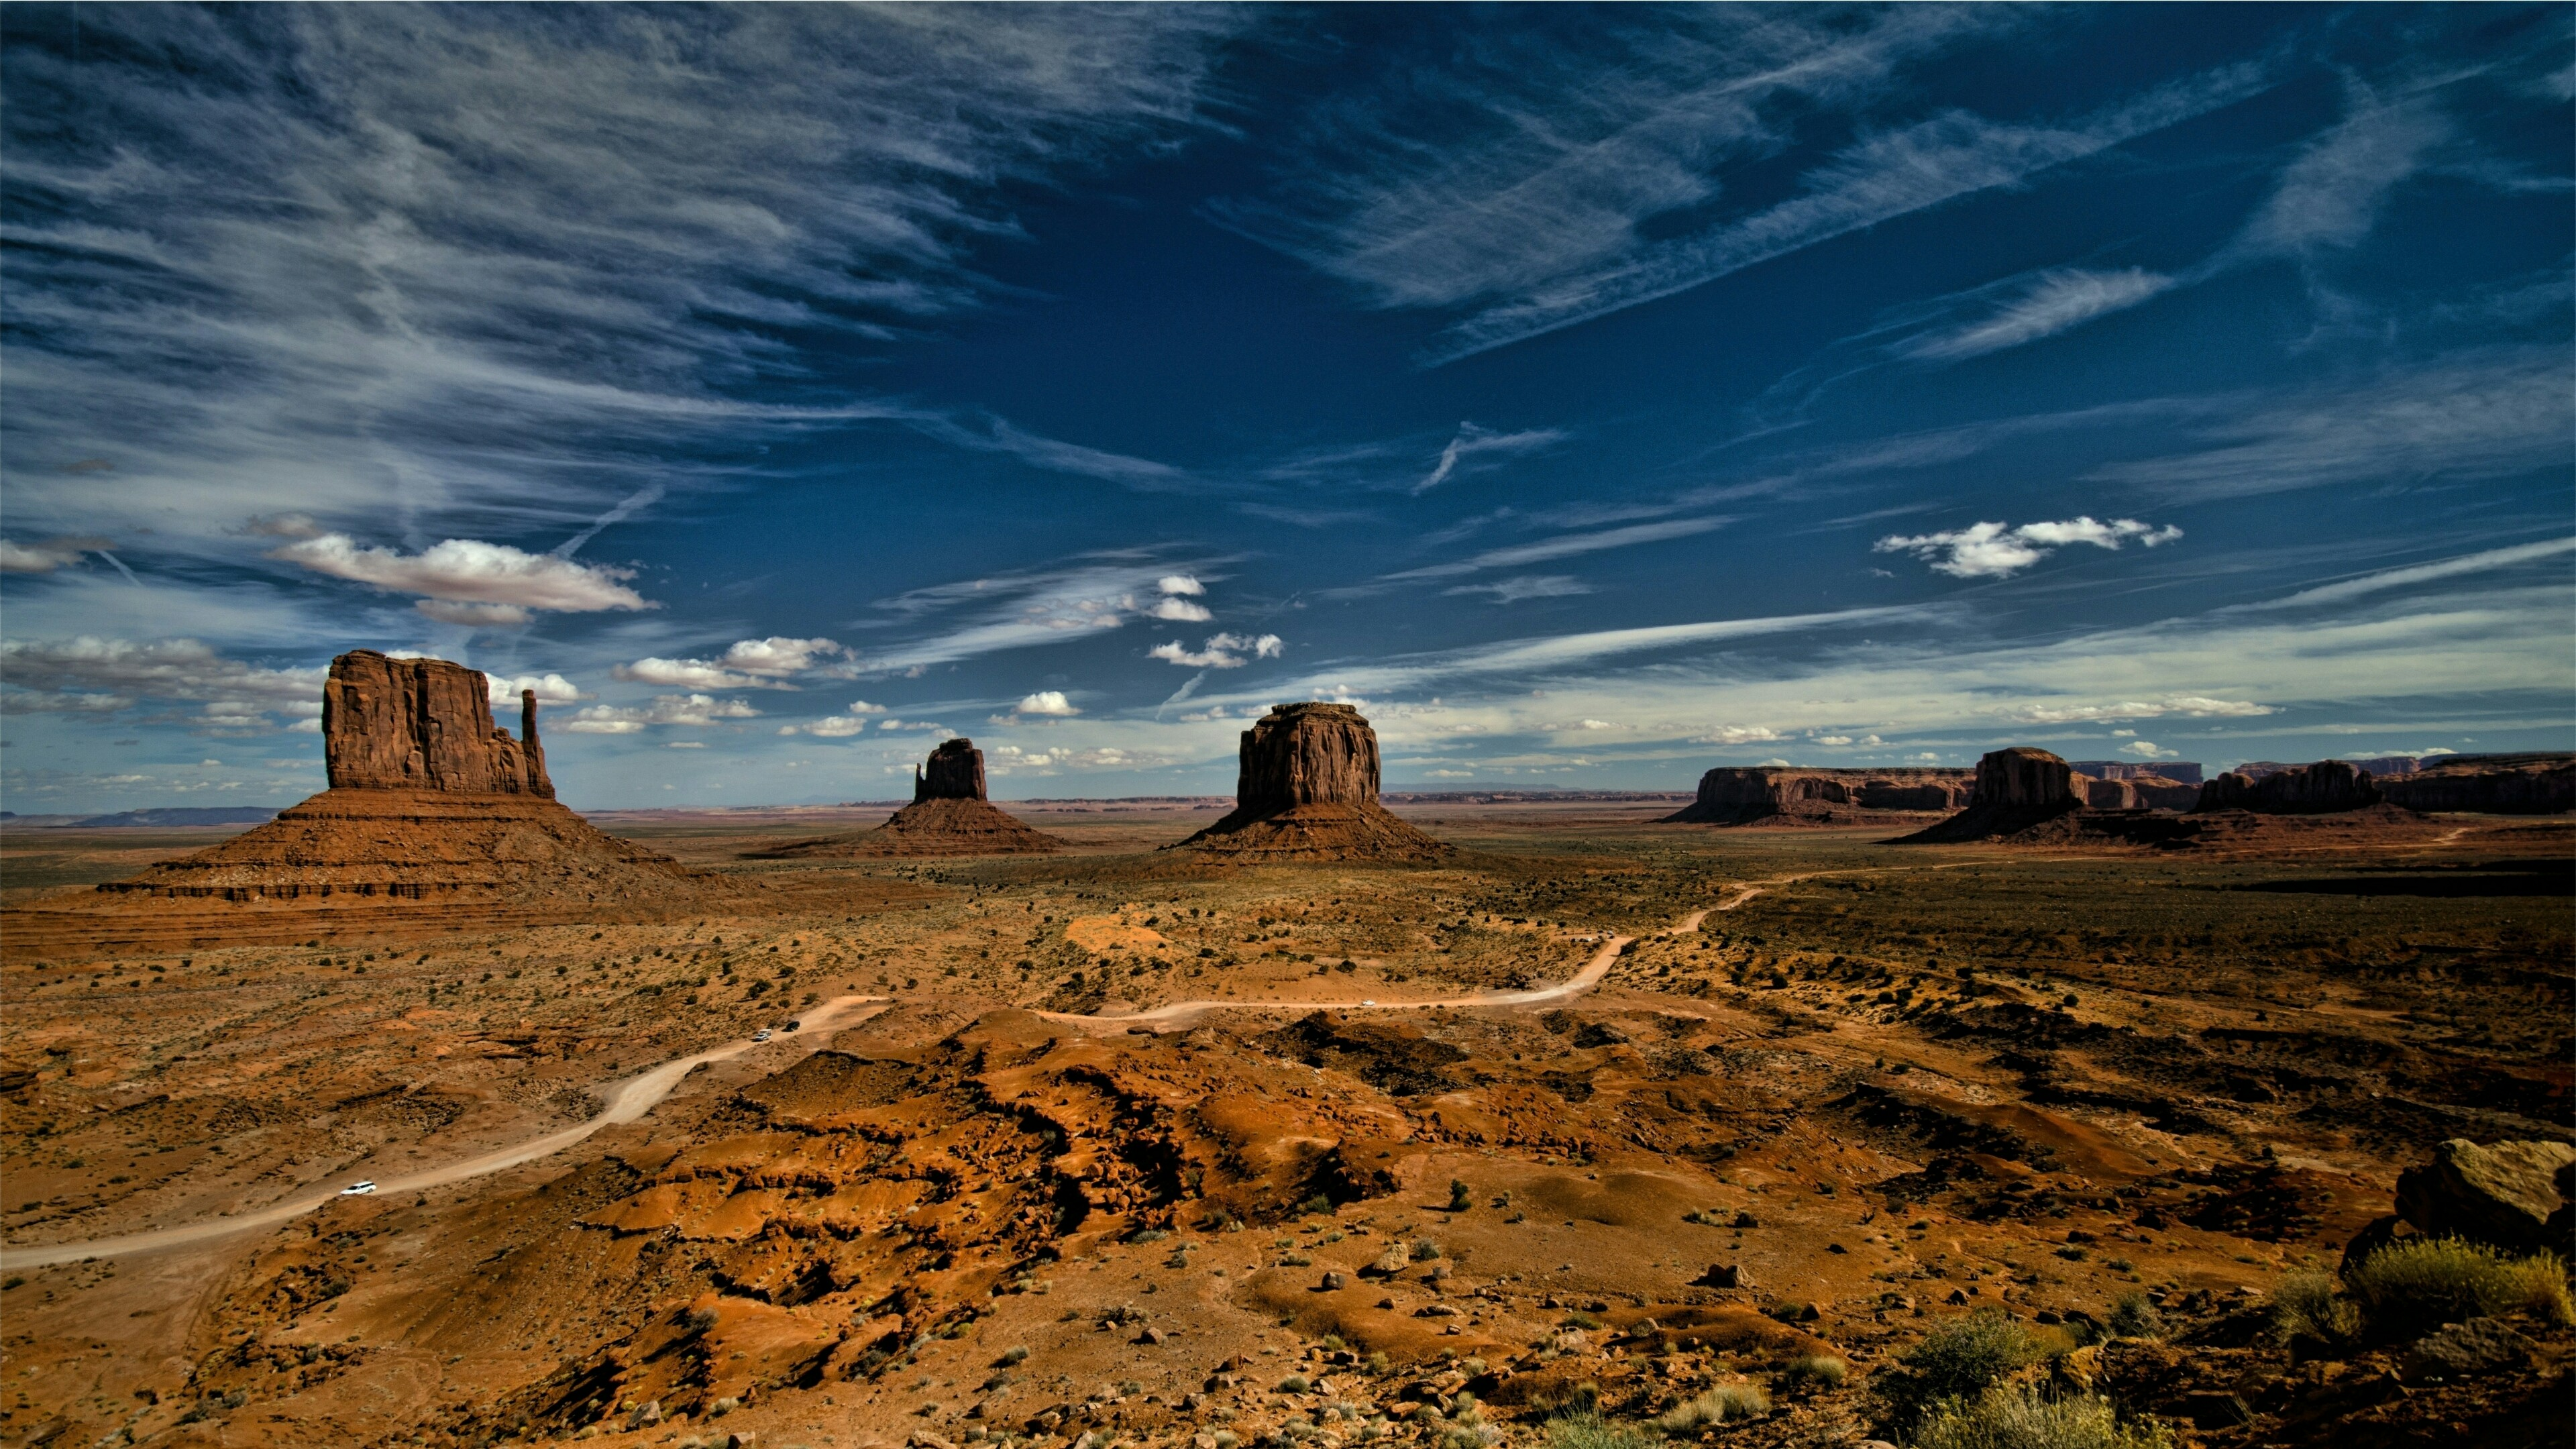 West and East Mitten Buttes - Colorado Plateau wallpaper